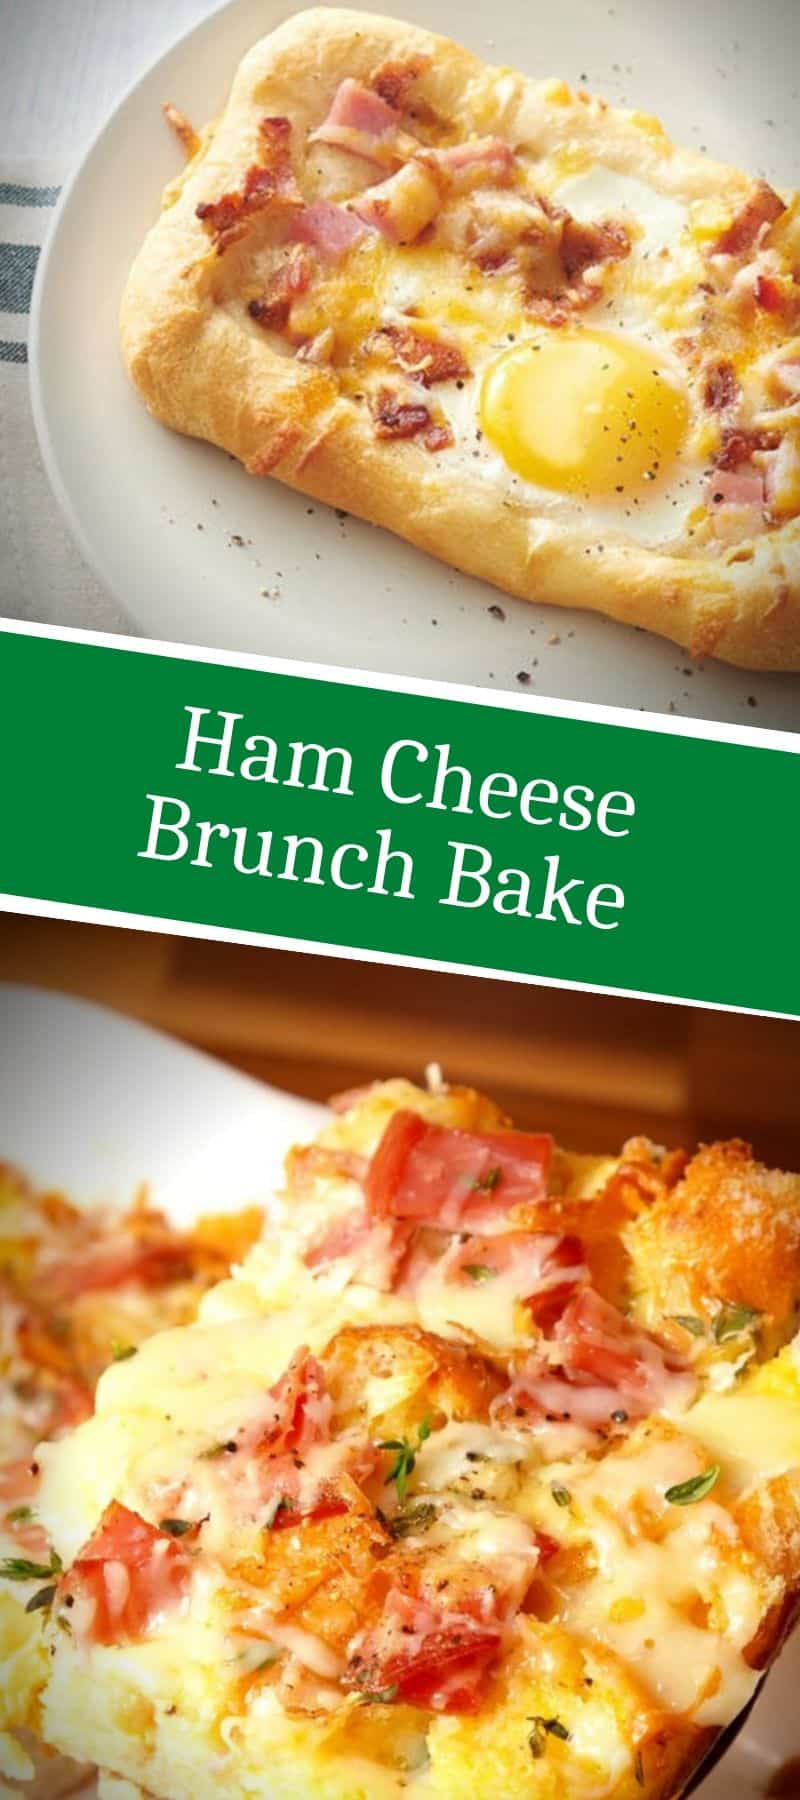 Ham Cheese Brunch Bake Recipe 3